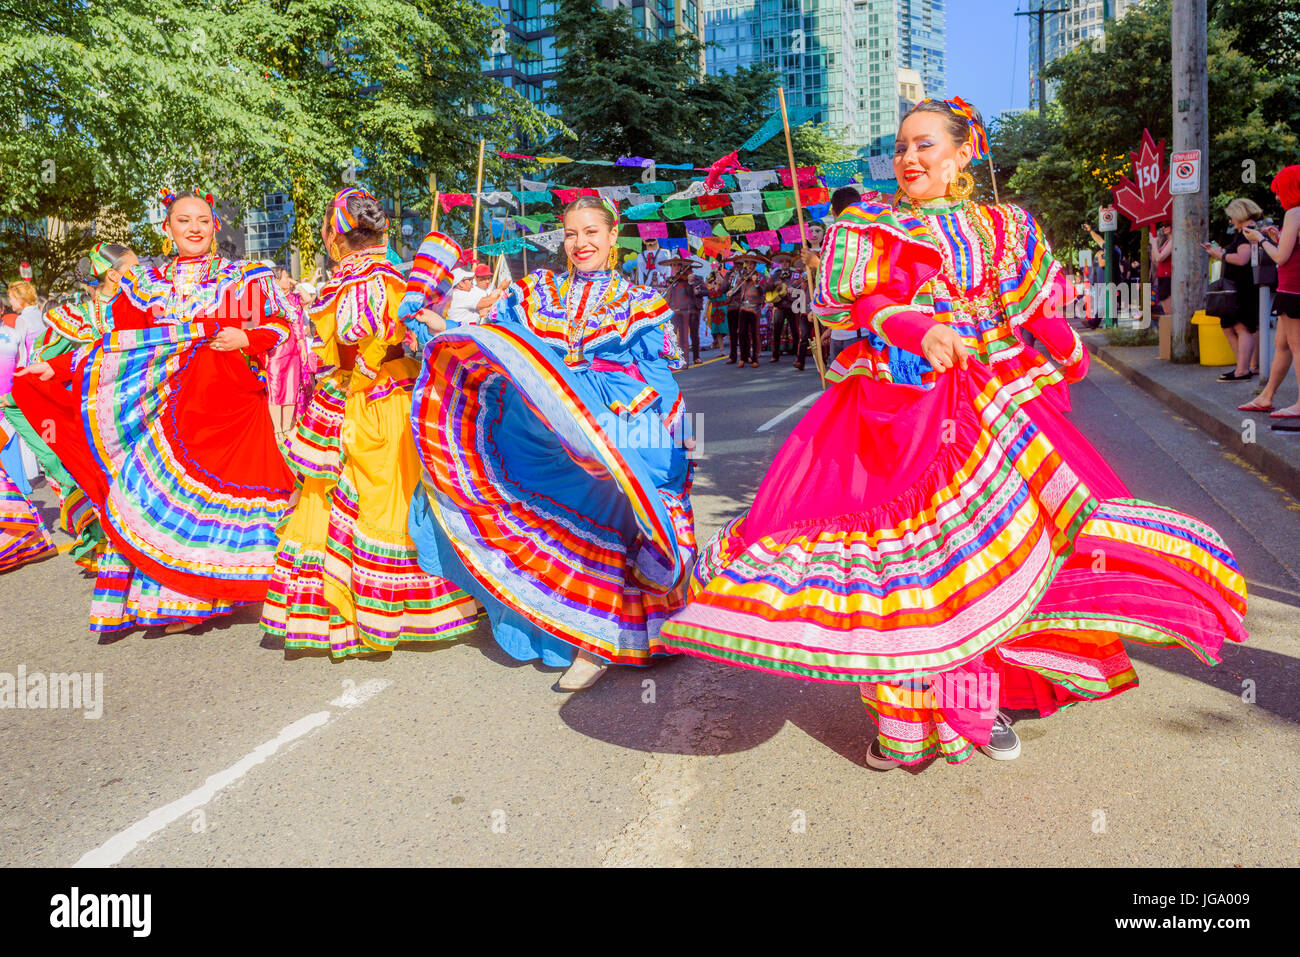 Mexican Group celebrates being Canadian at Canada 150, Canada Day Parade, Vancouver, British Columbia, Canada. - Stock Image